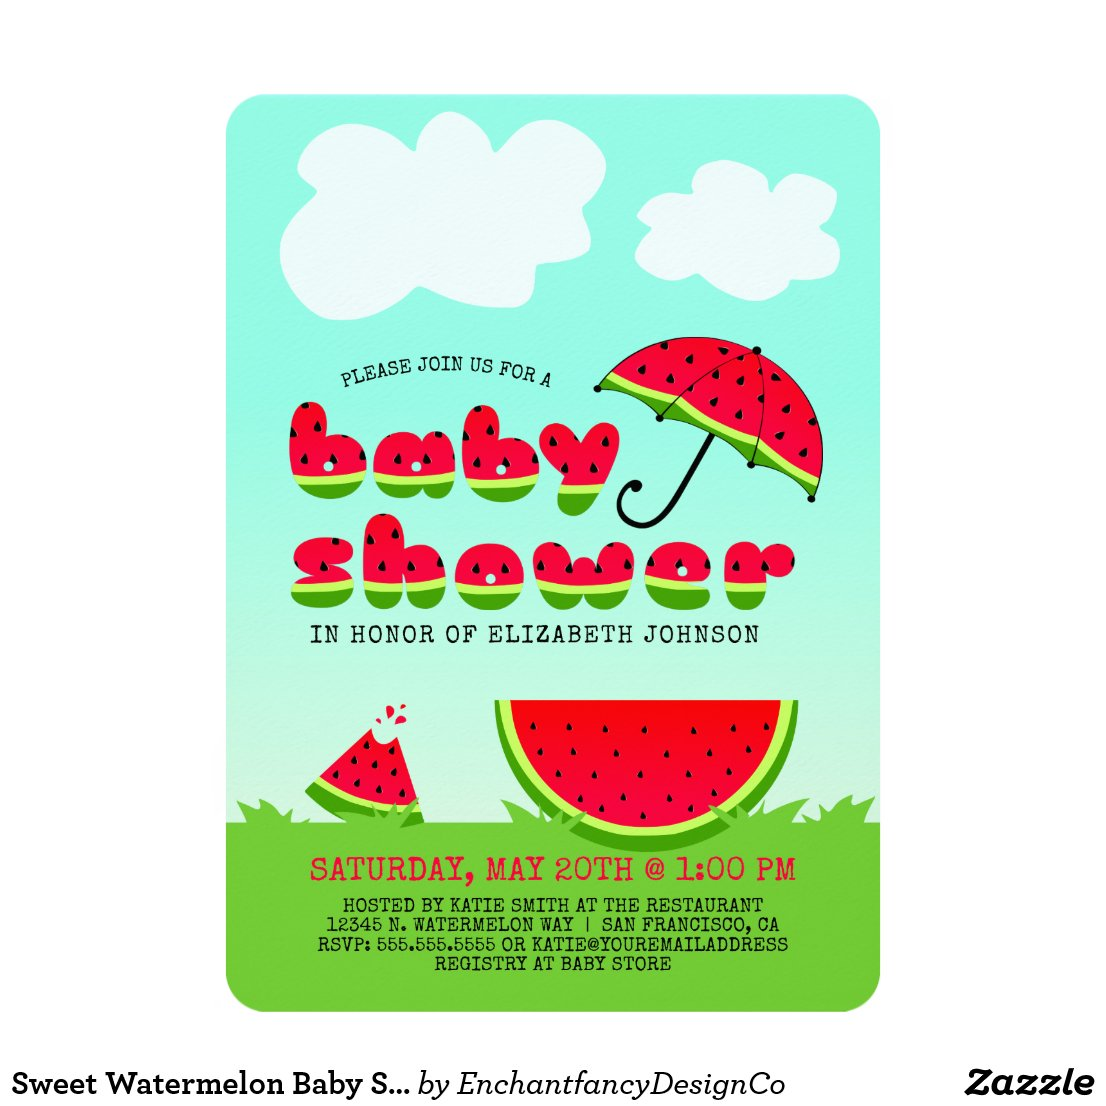 Sweet Watermelon Baby Shower